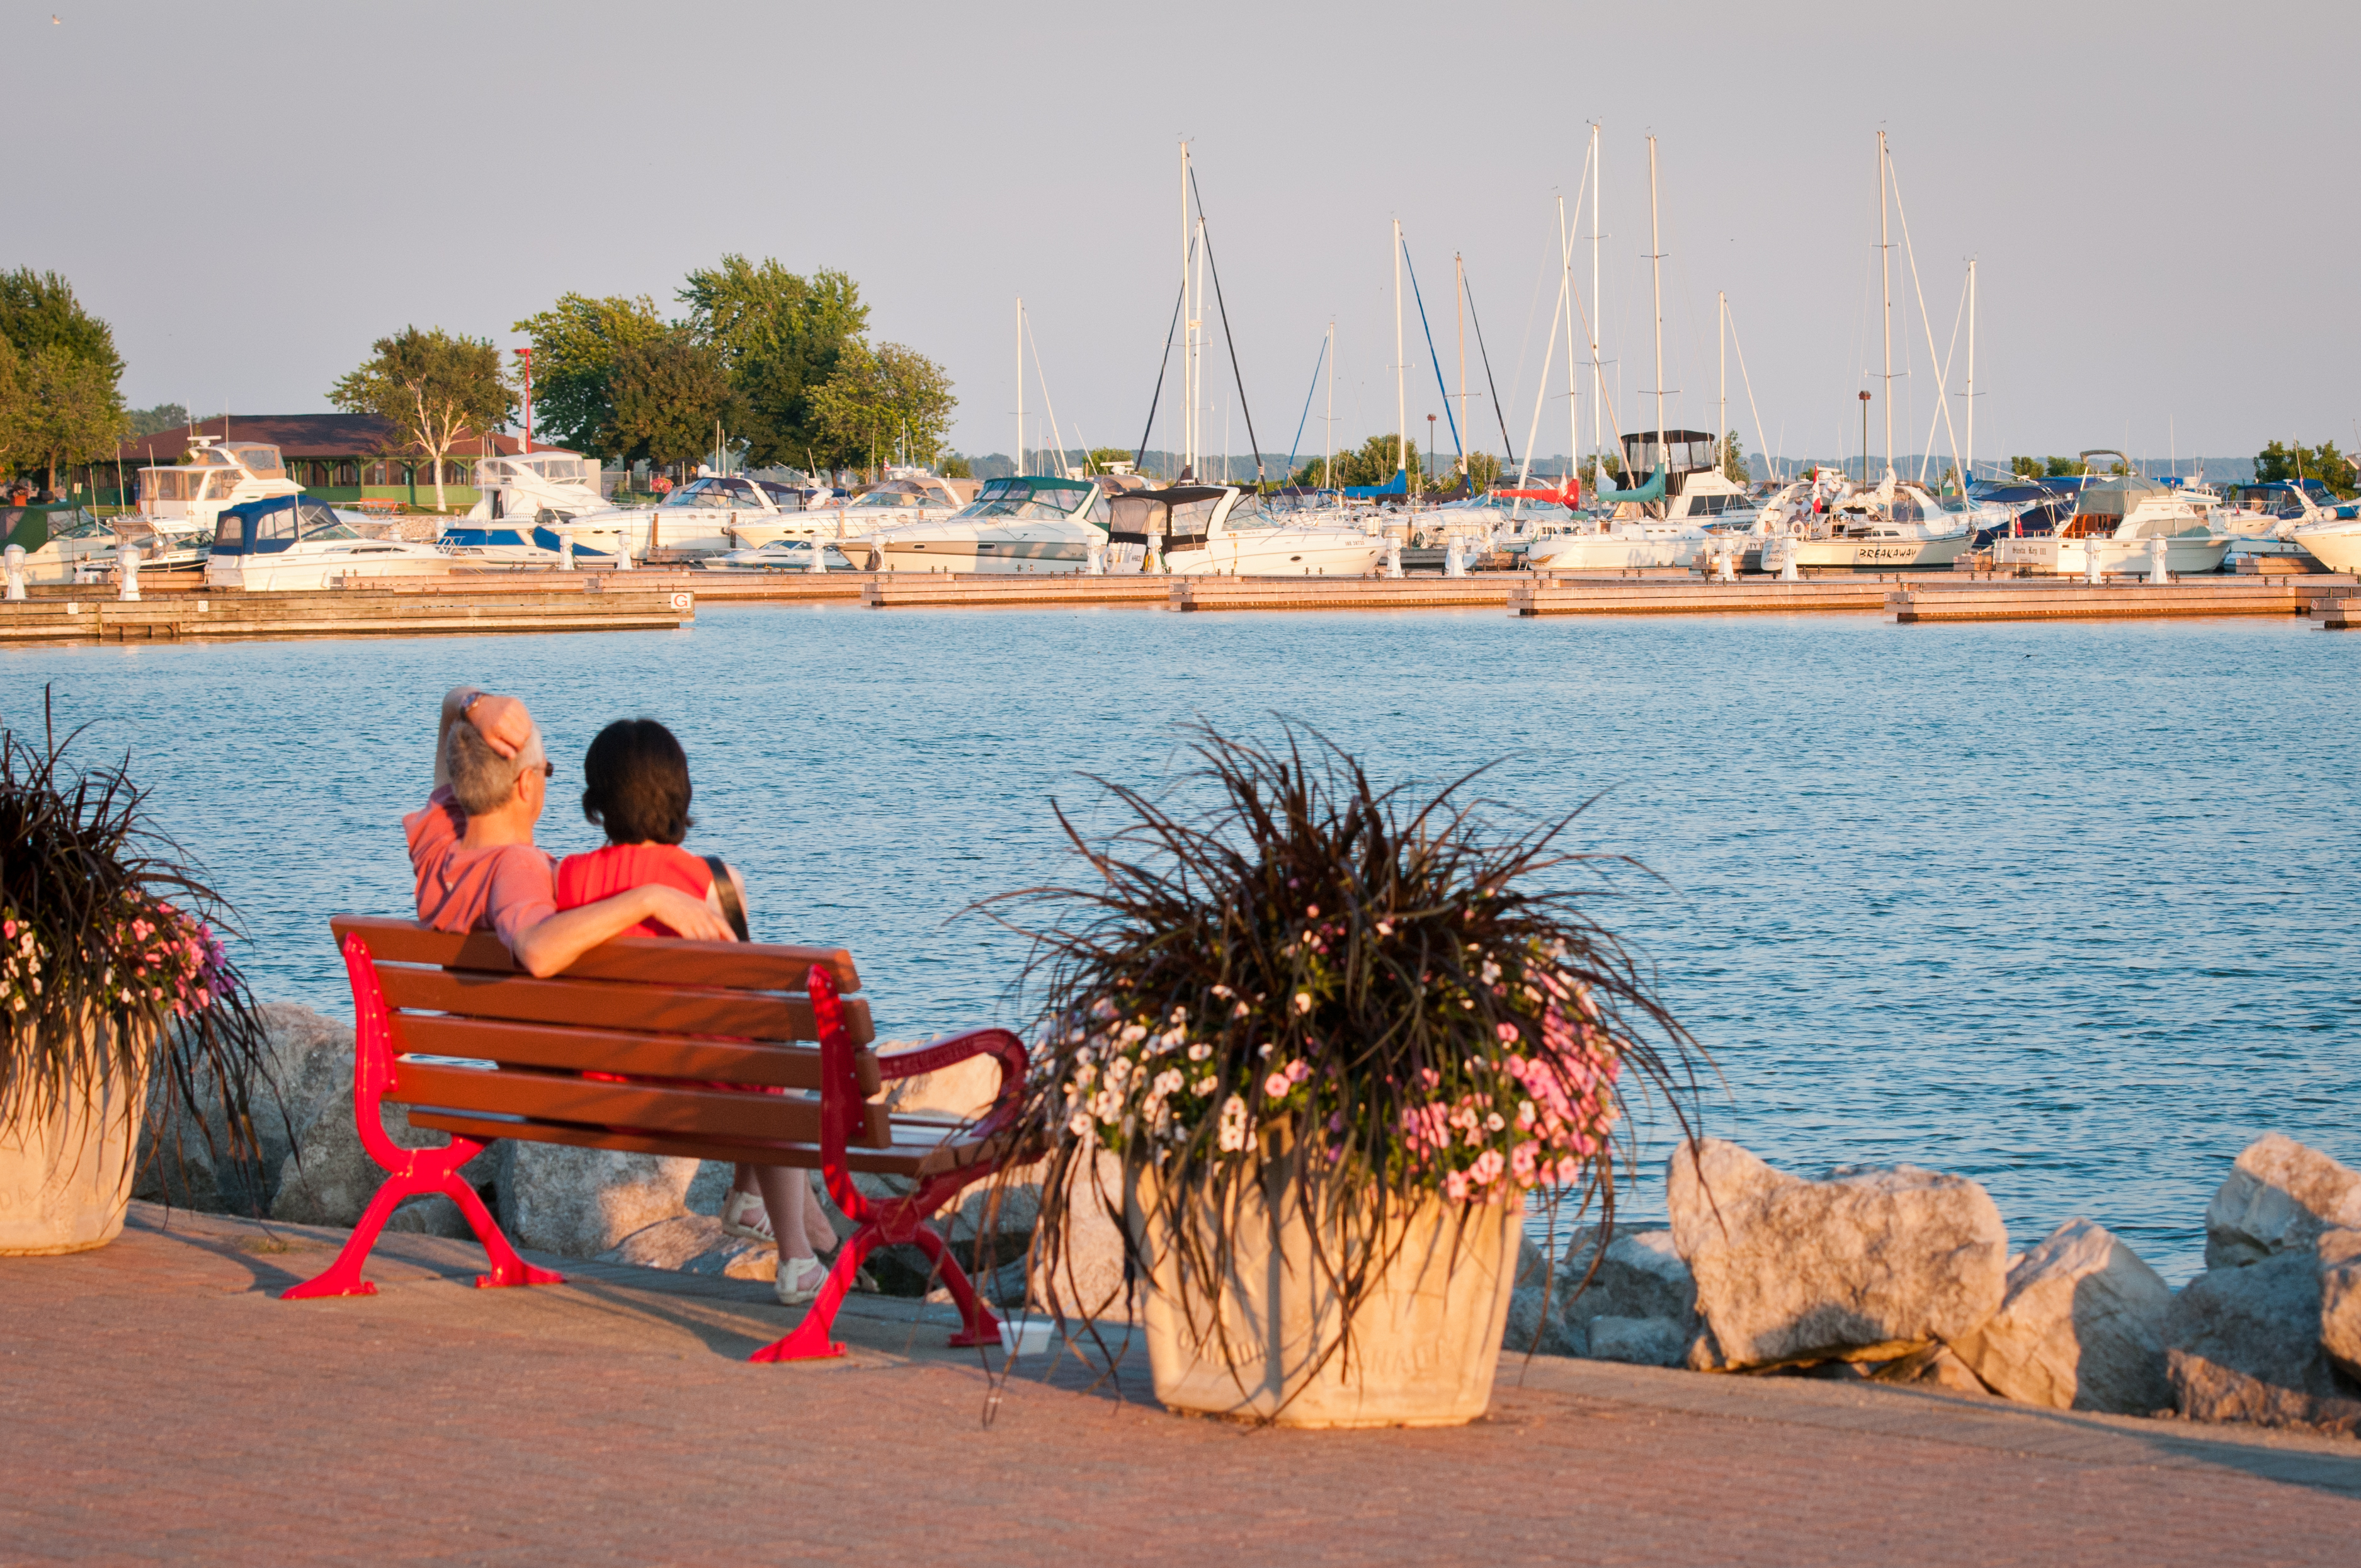 Couple on Bench at waterfront